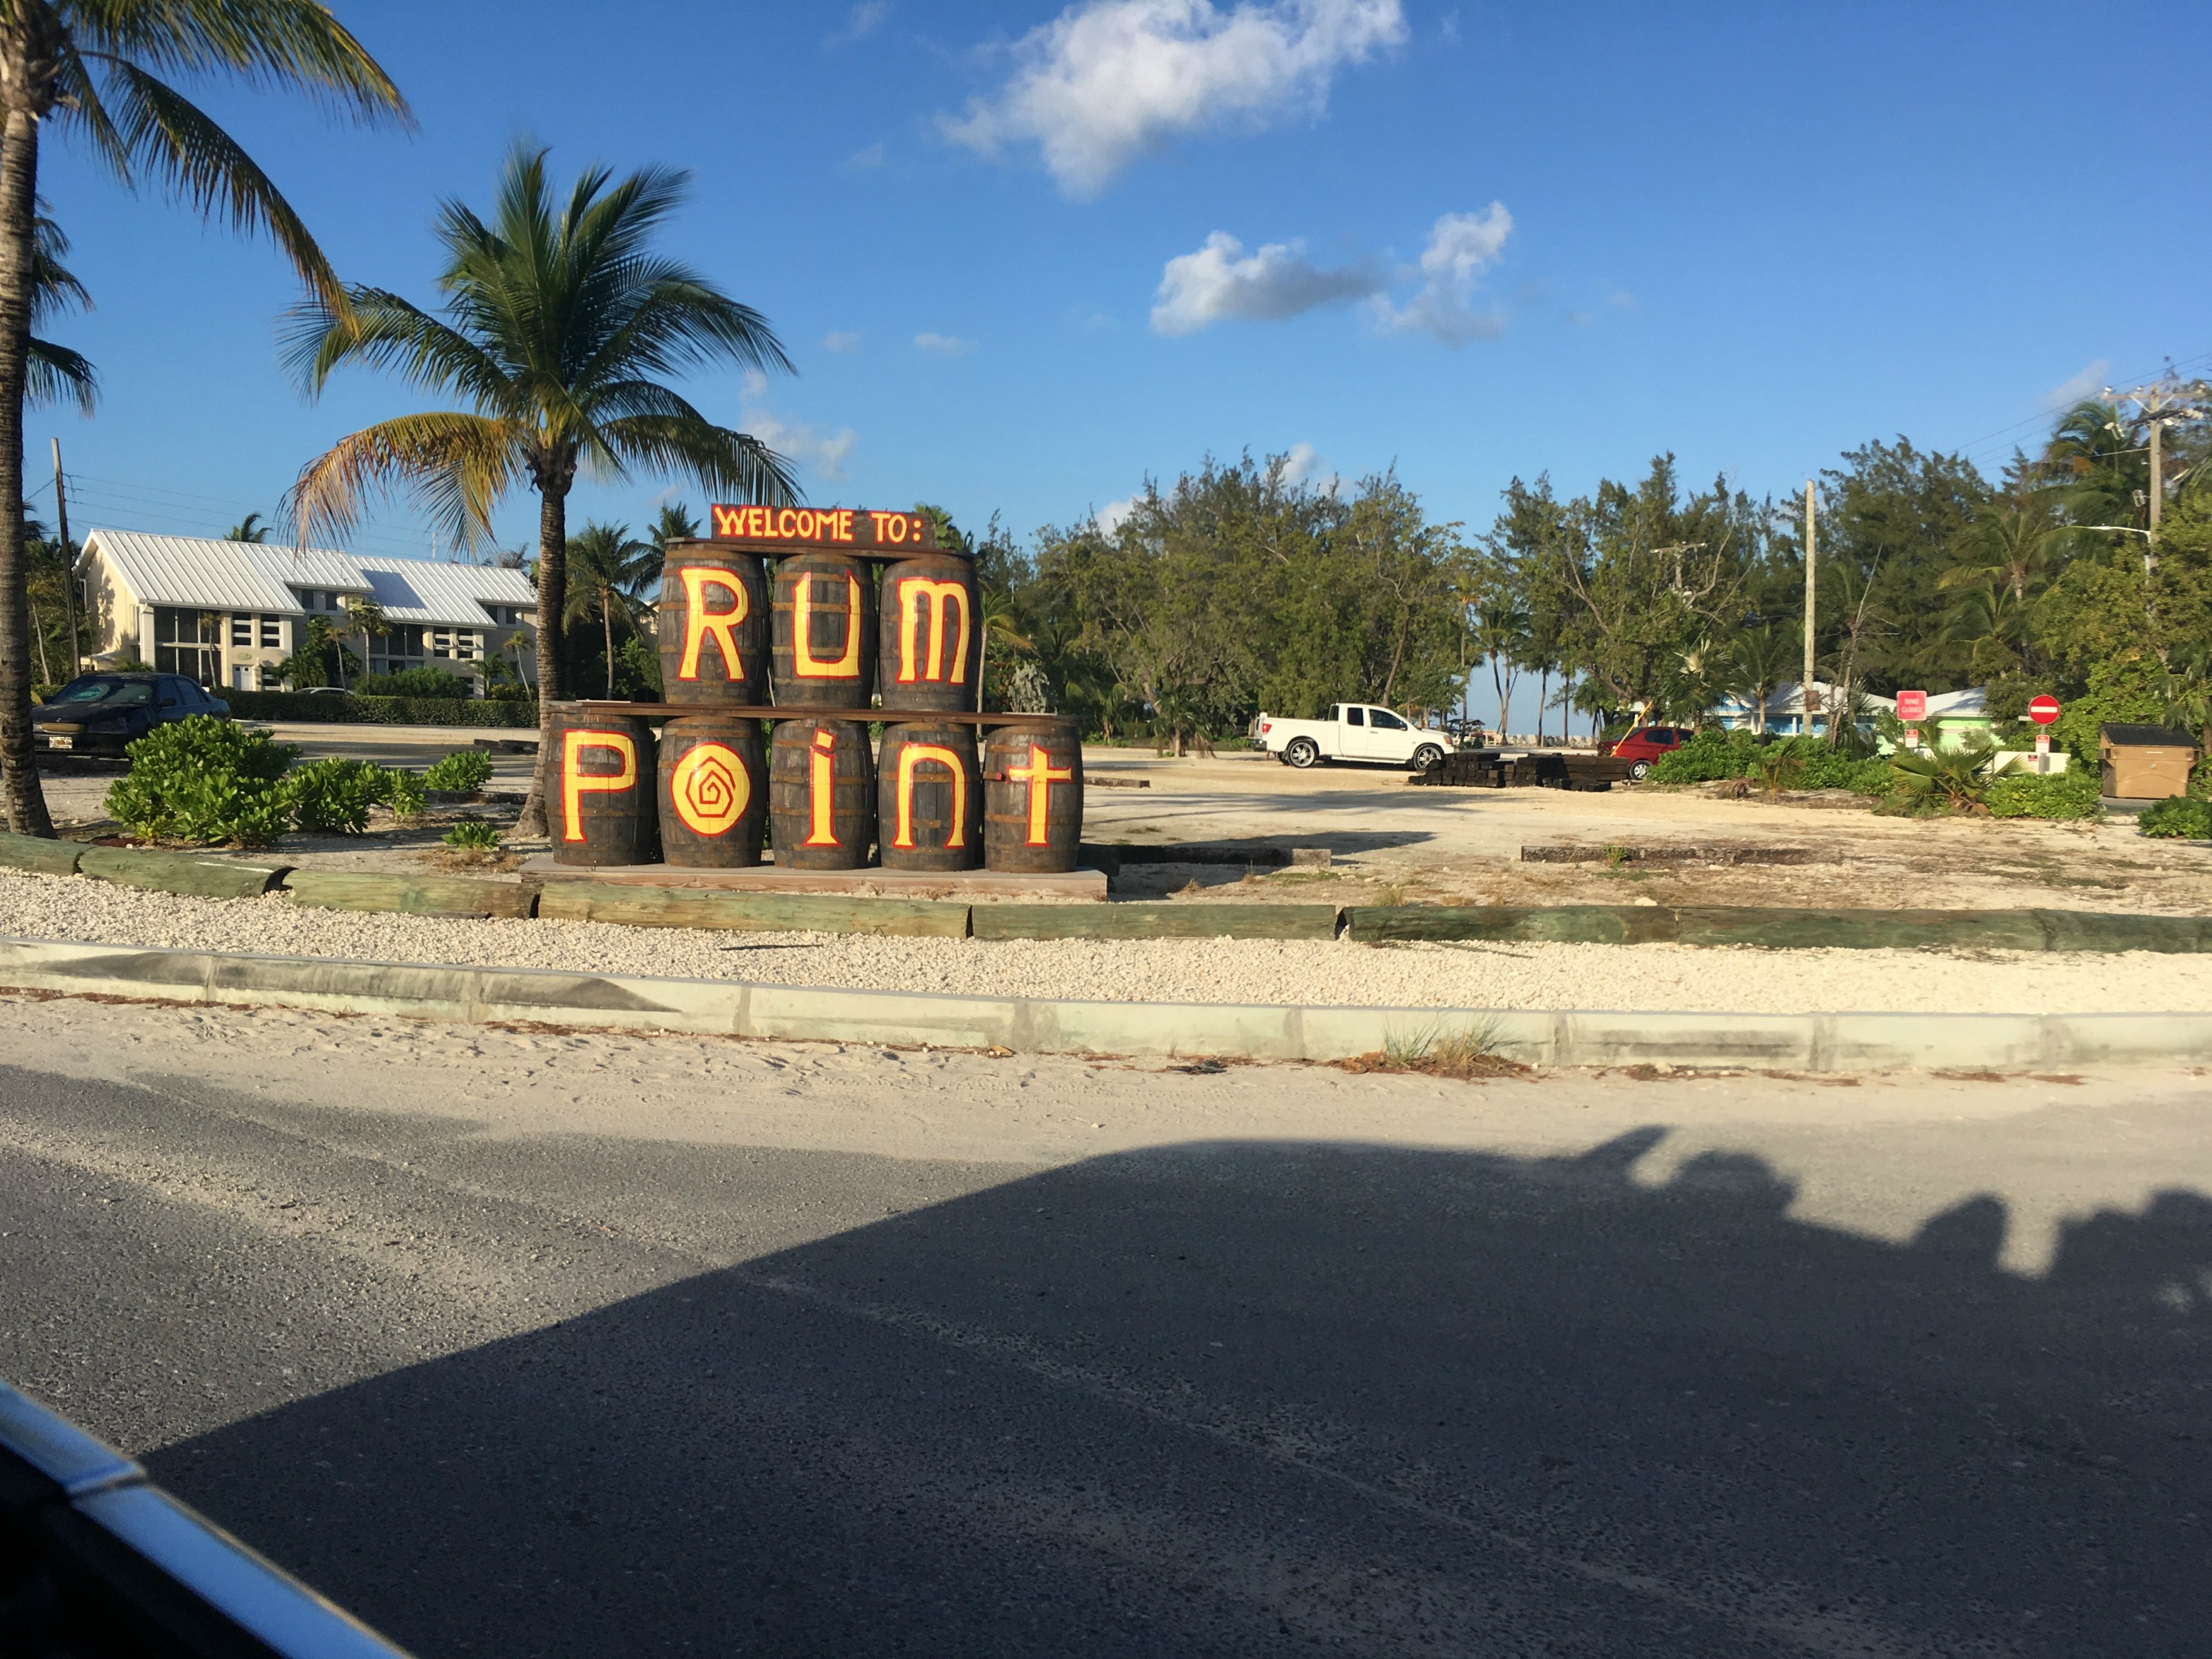 Rum Point in Grand Cayman (pic taken from car)